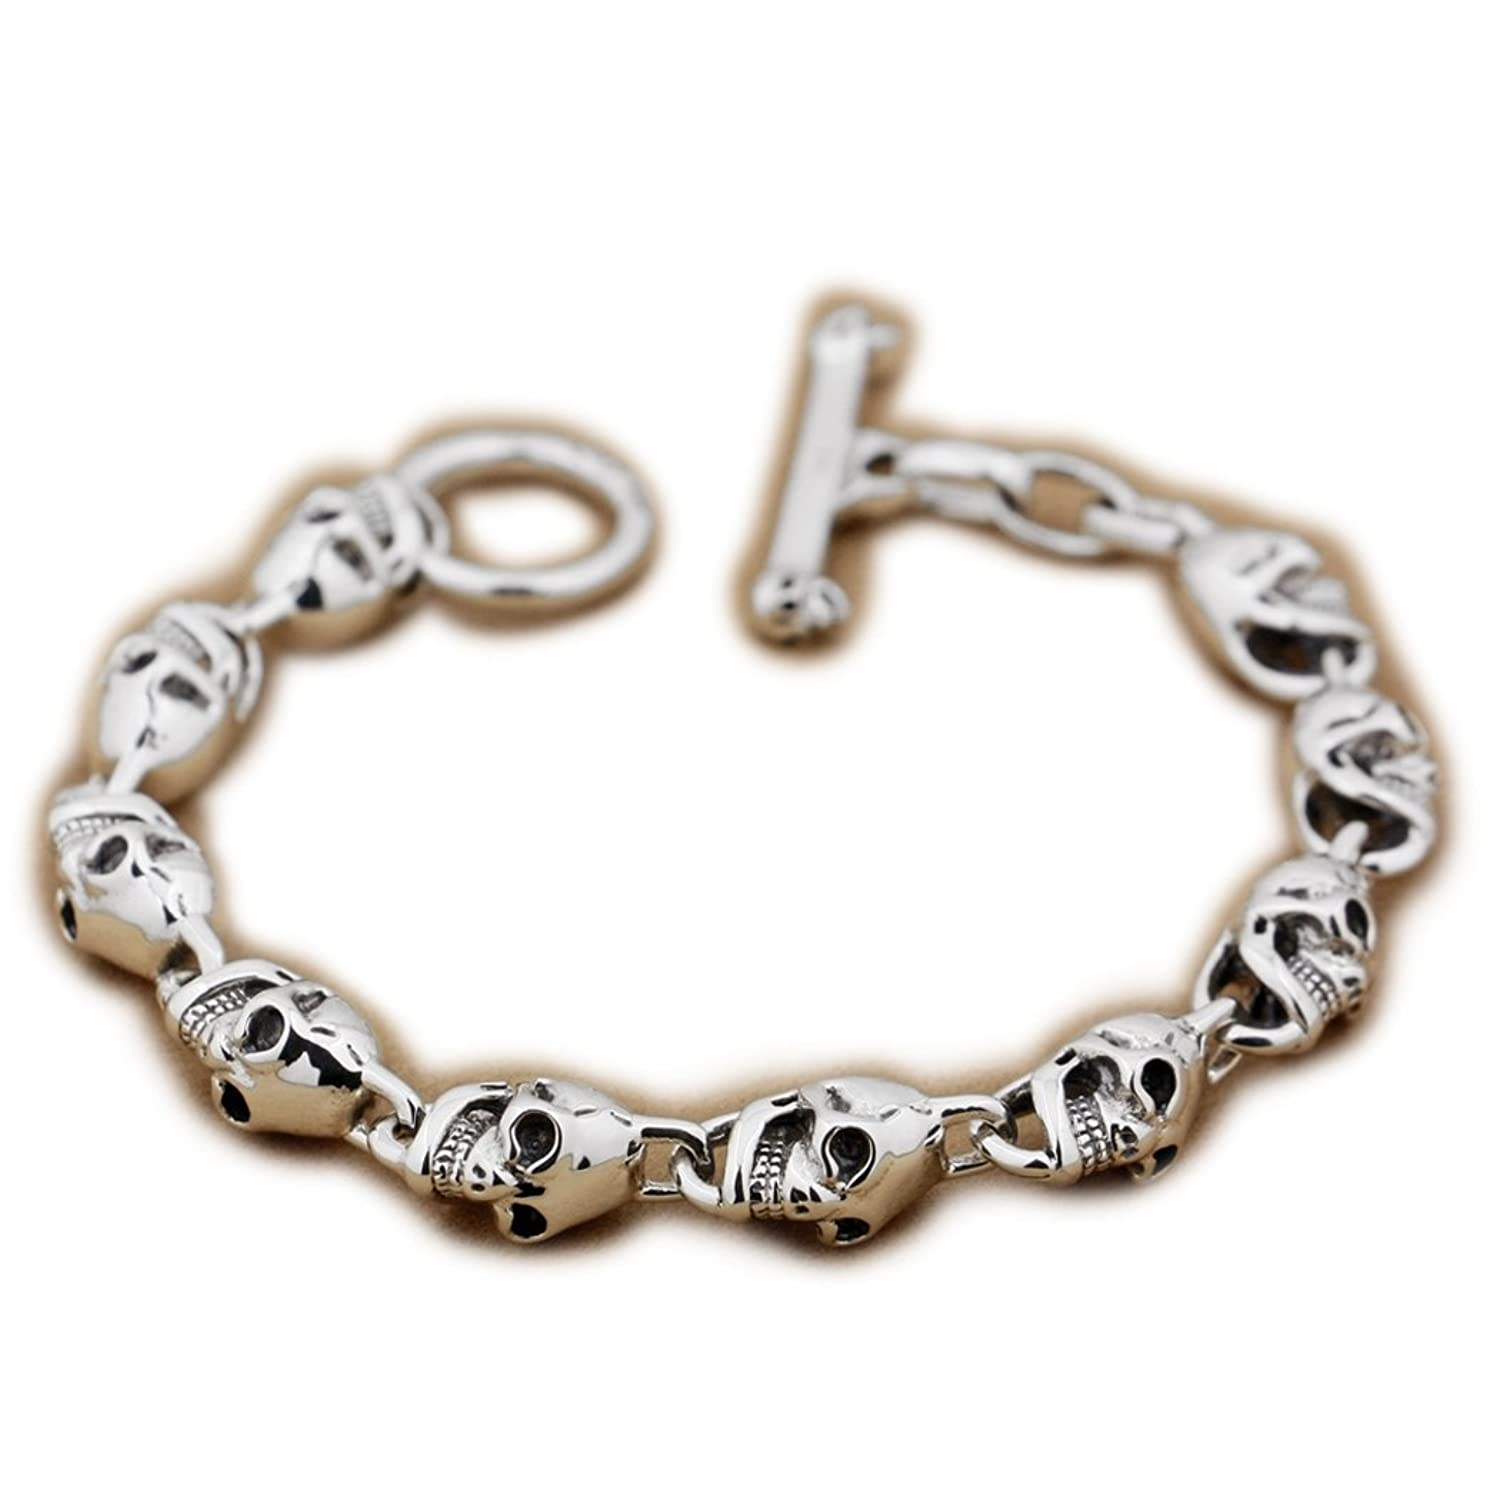 6 Lengths 925 Sterling Silver Skulls Mens Biker Punk Bracelet 8W004